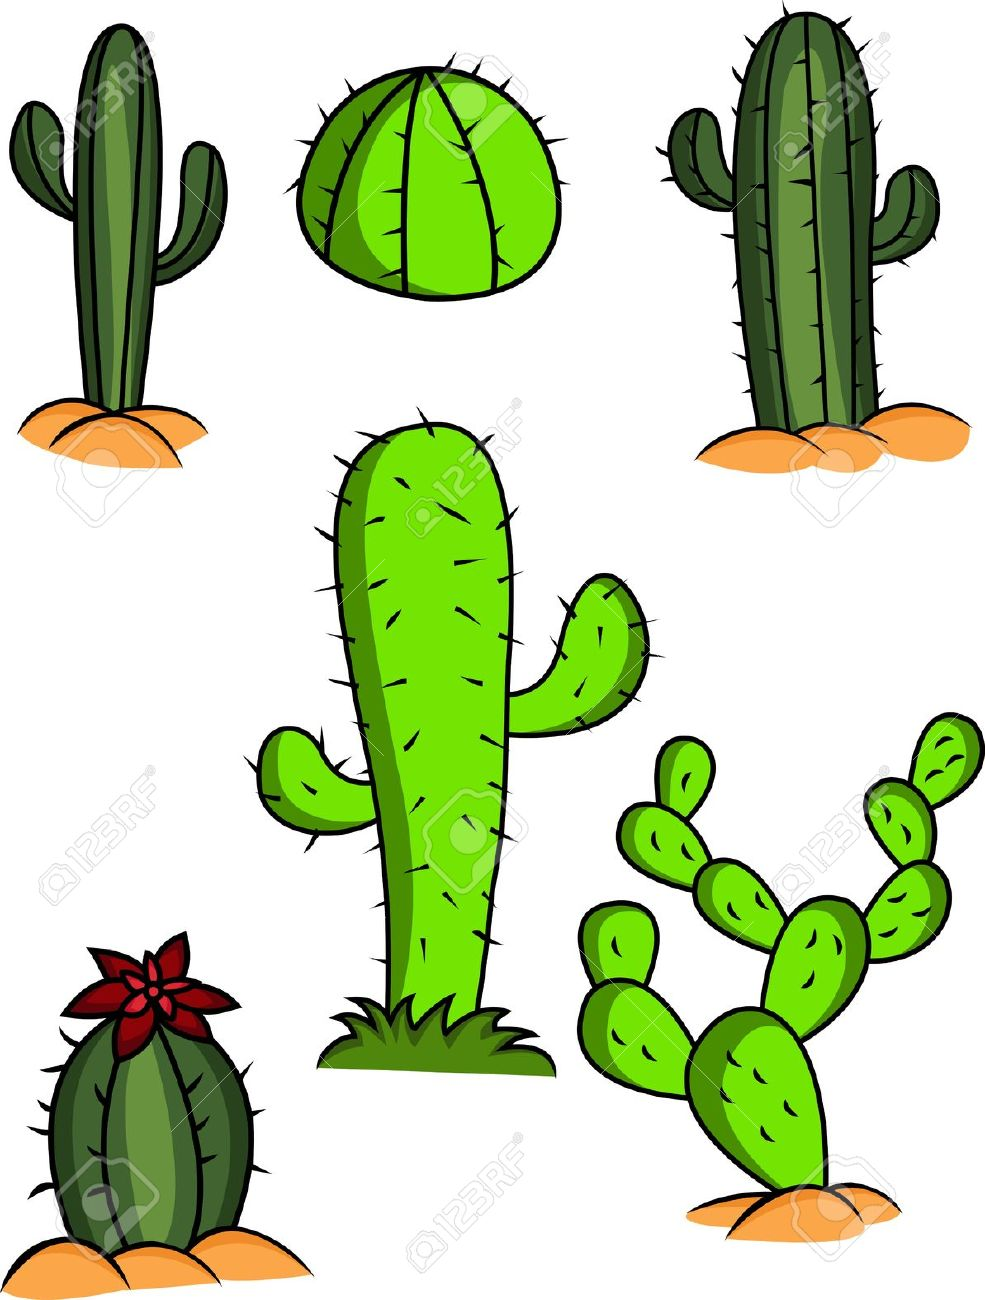 943 Prickle Stock Illustrations, Cliparts And Royalty Free Prickle.